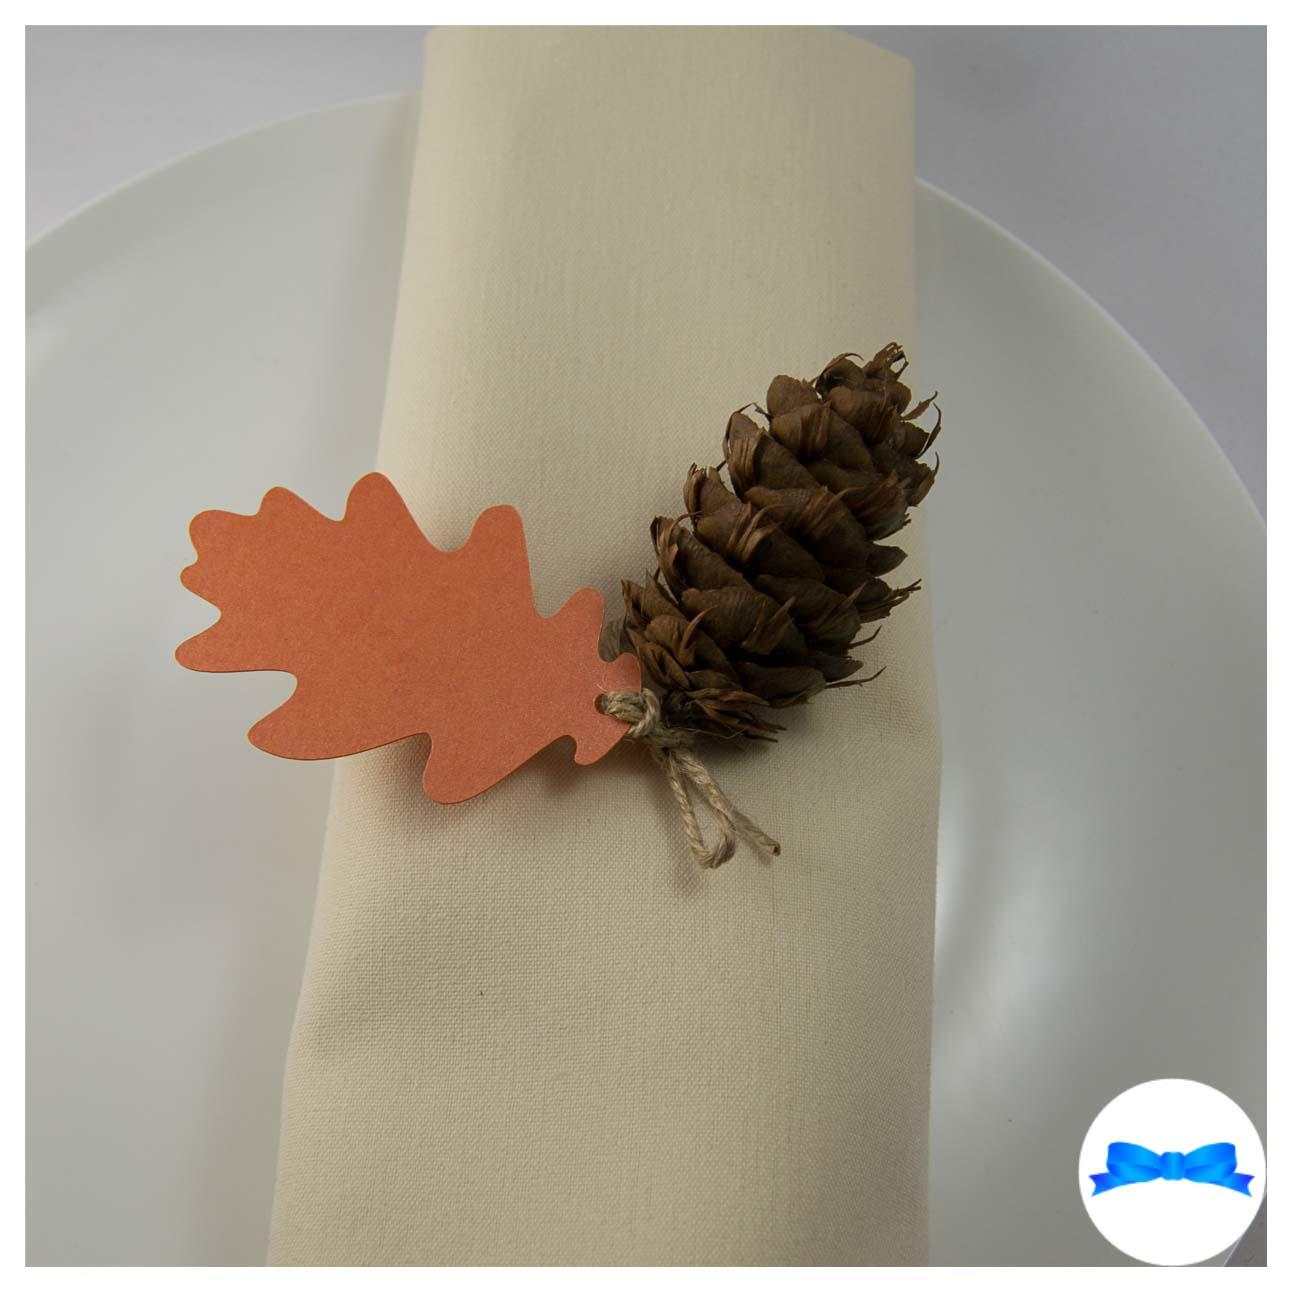 Burnt orange oak leaves - Tag with pine cone